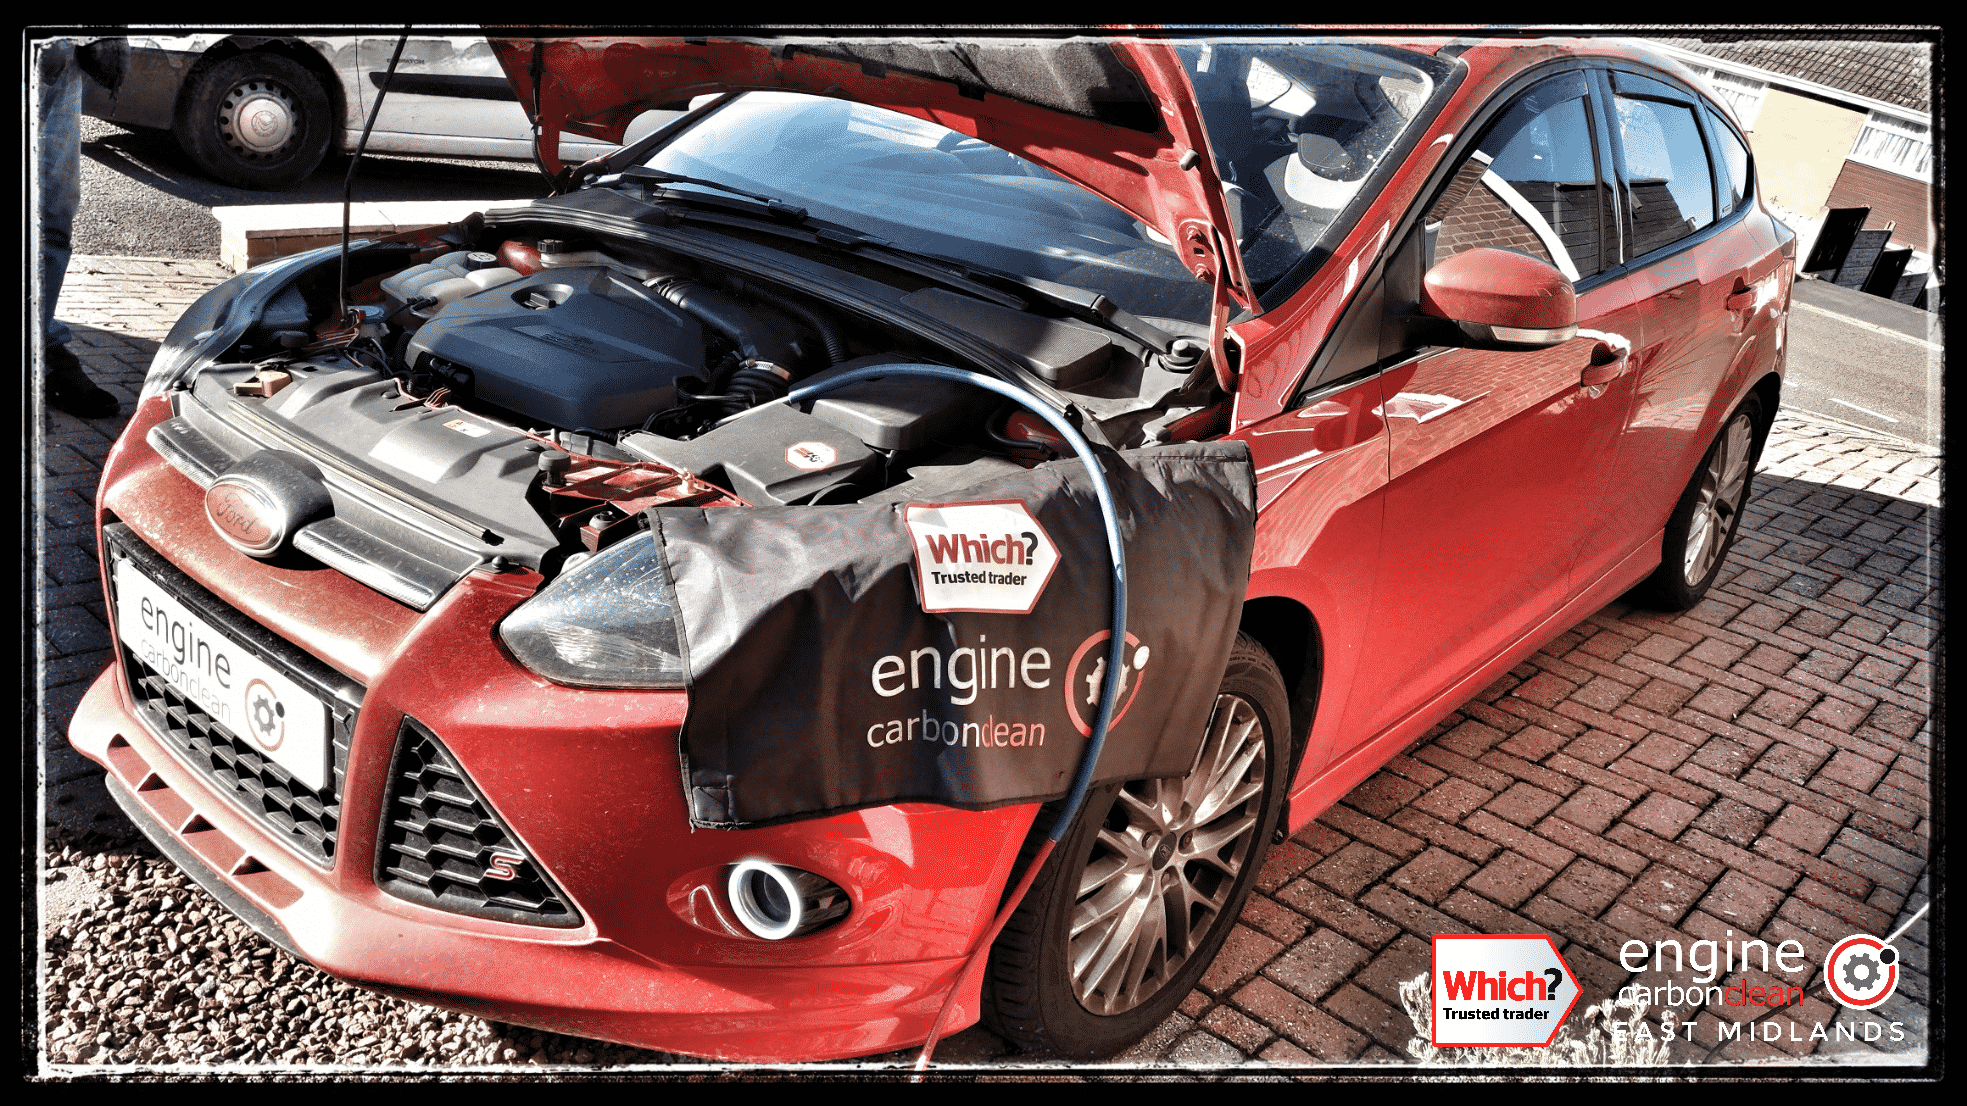 Engine Carbon Clean on a Ford Focus S 1.6 (2012 - 100,201 miles)